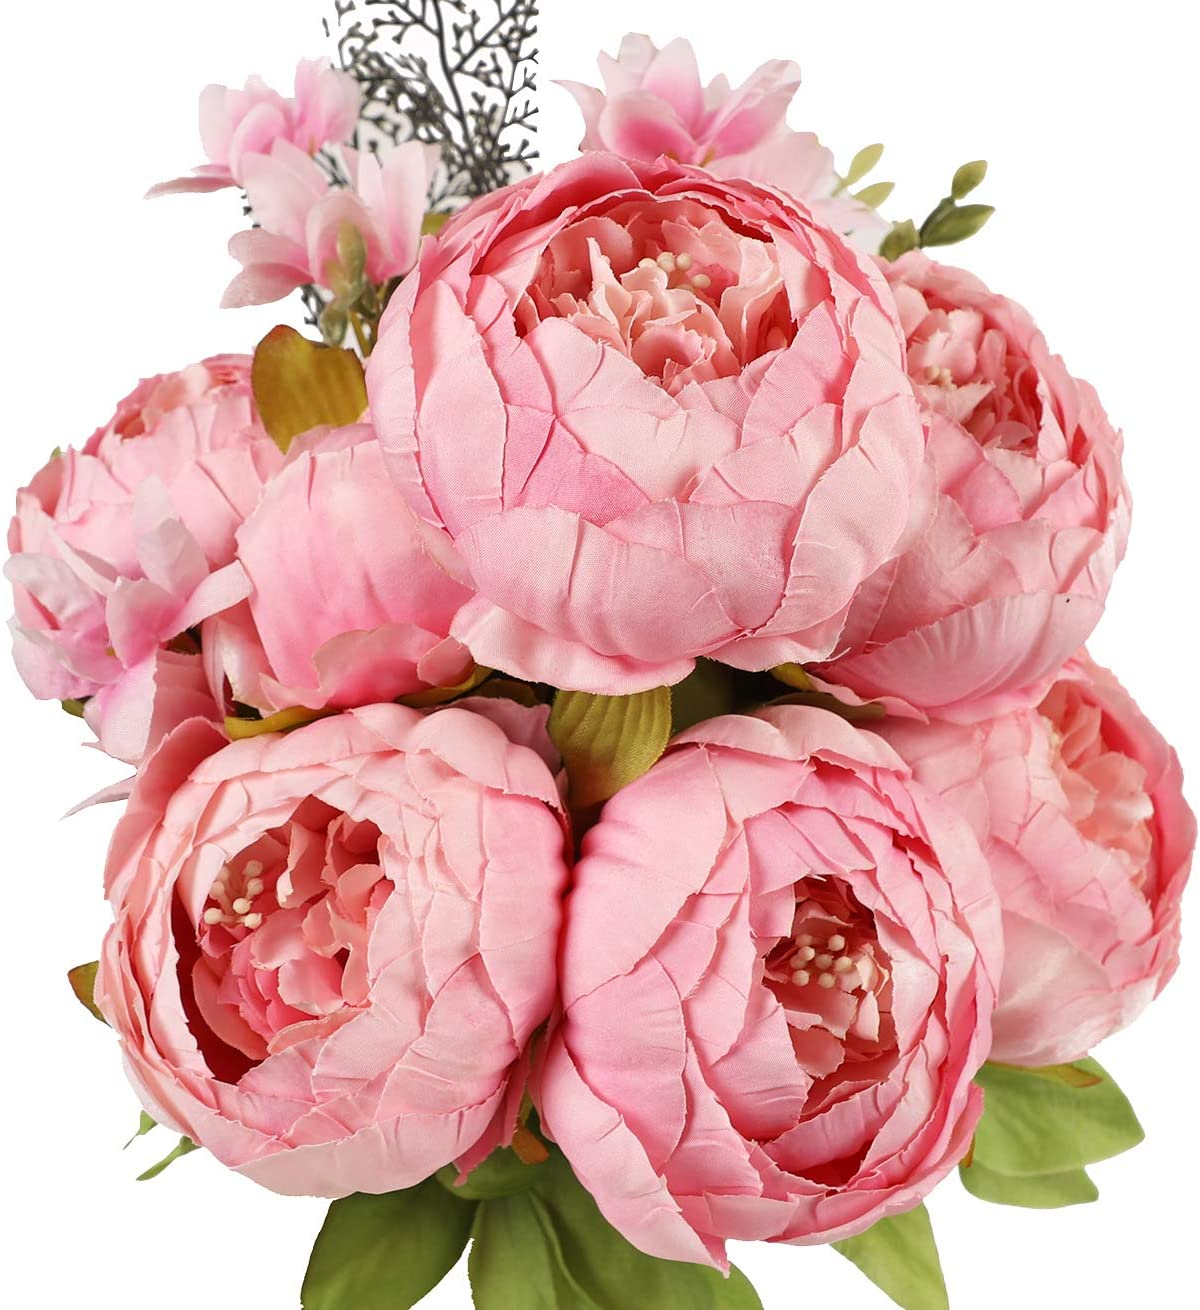 JyiHope Artificial Peony Silk Flowers Fake Peonies Vintage Bouquet Home Table Centerpieces Wedding Decoration (Spring Light Pink)